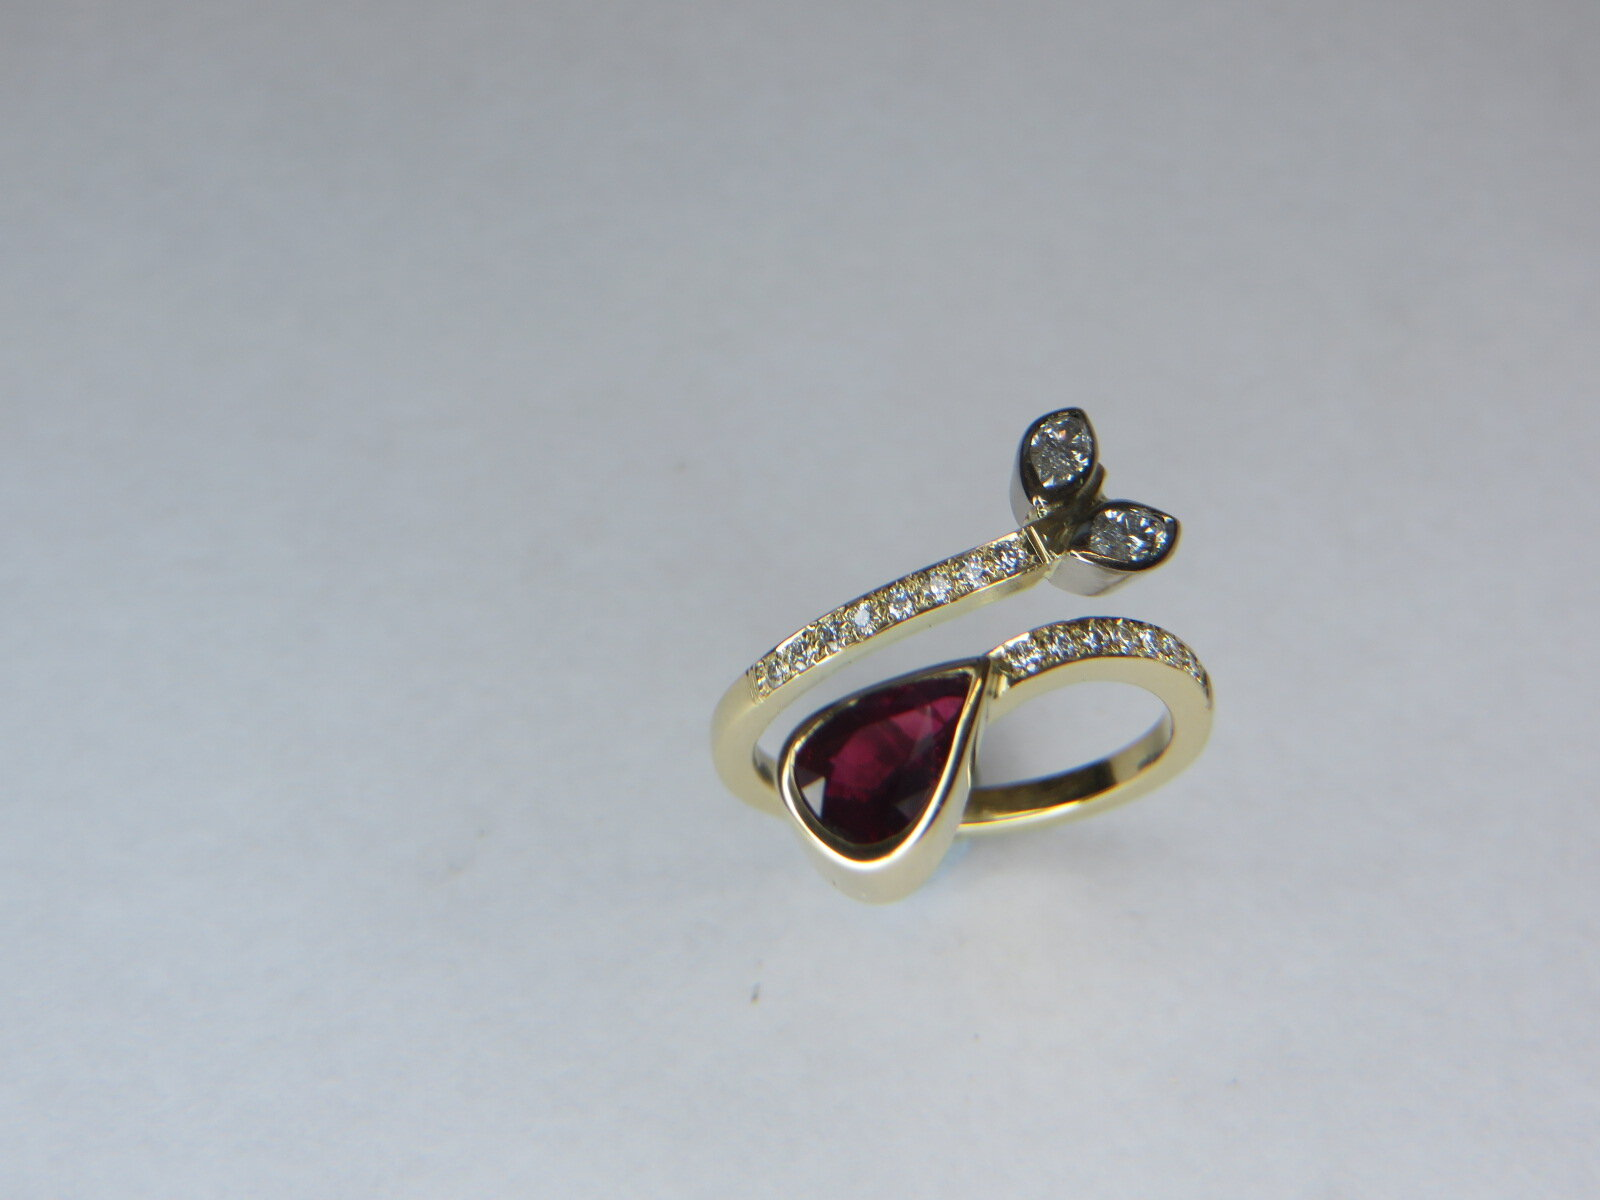 Ruby and Diamond dress ring mounted in 18ct Gold.